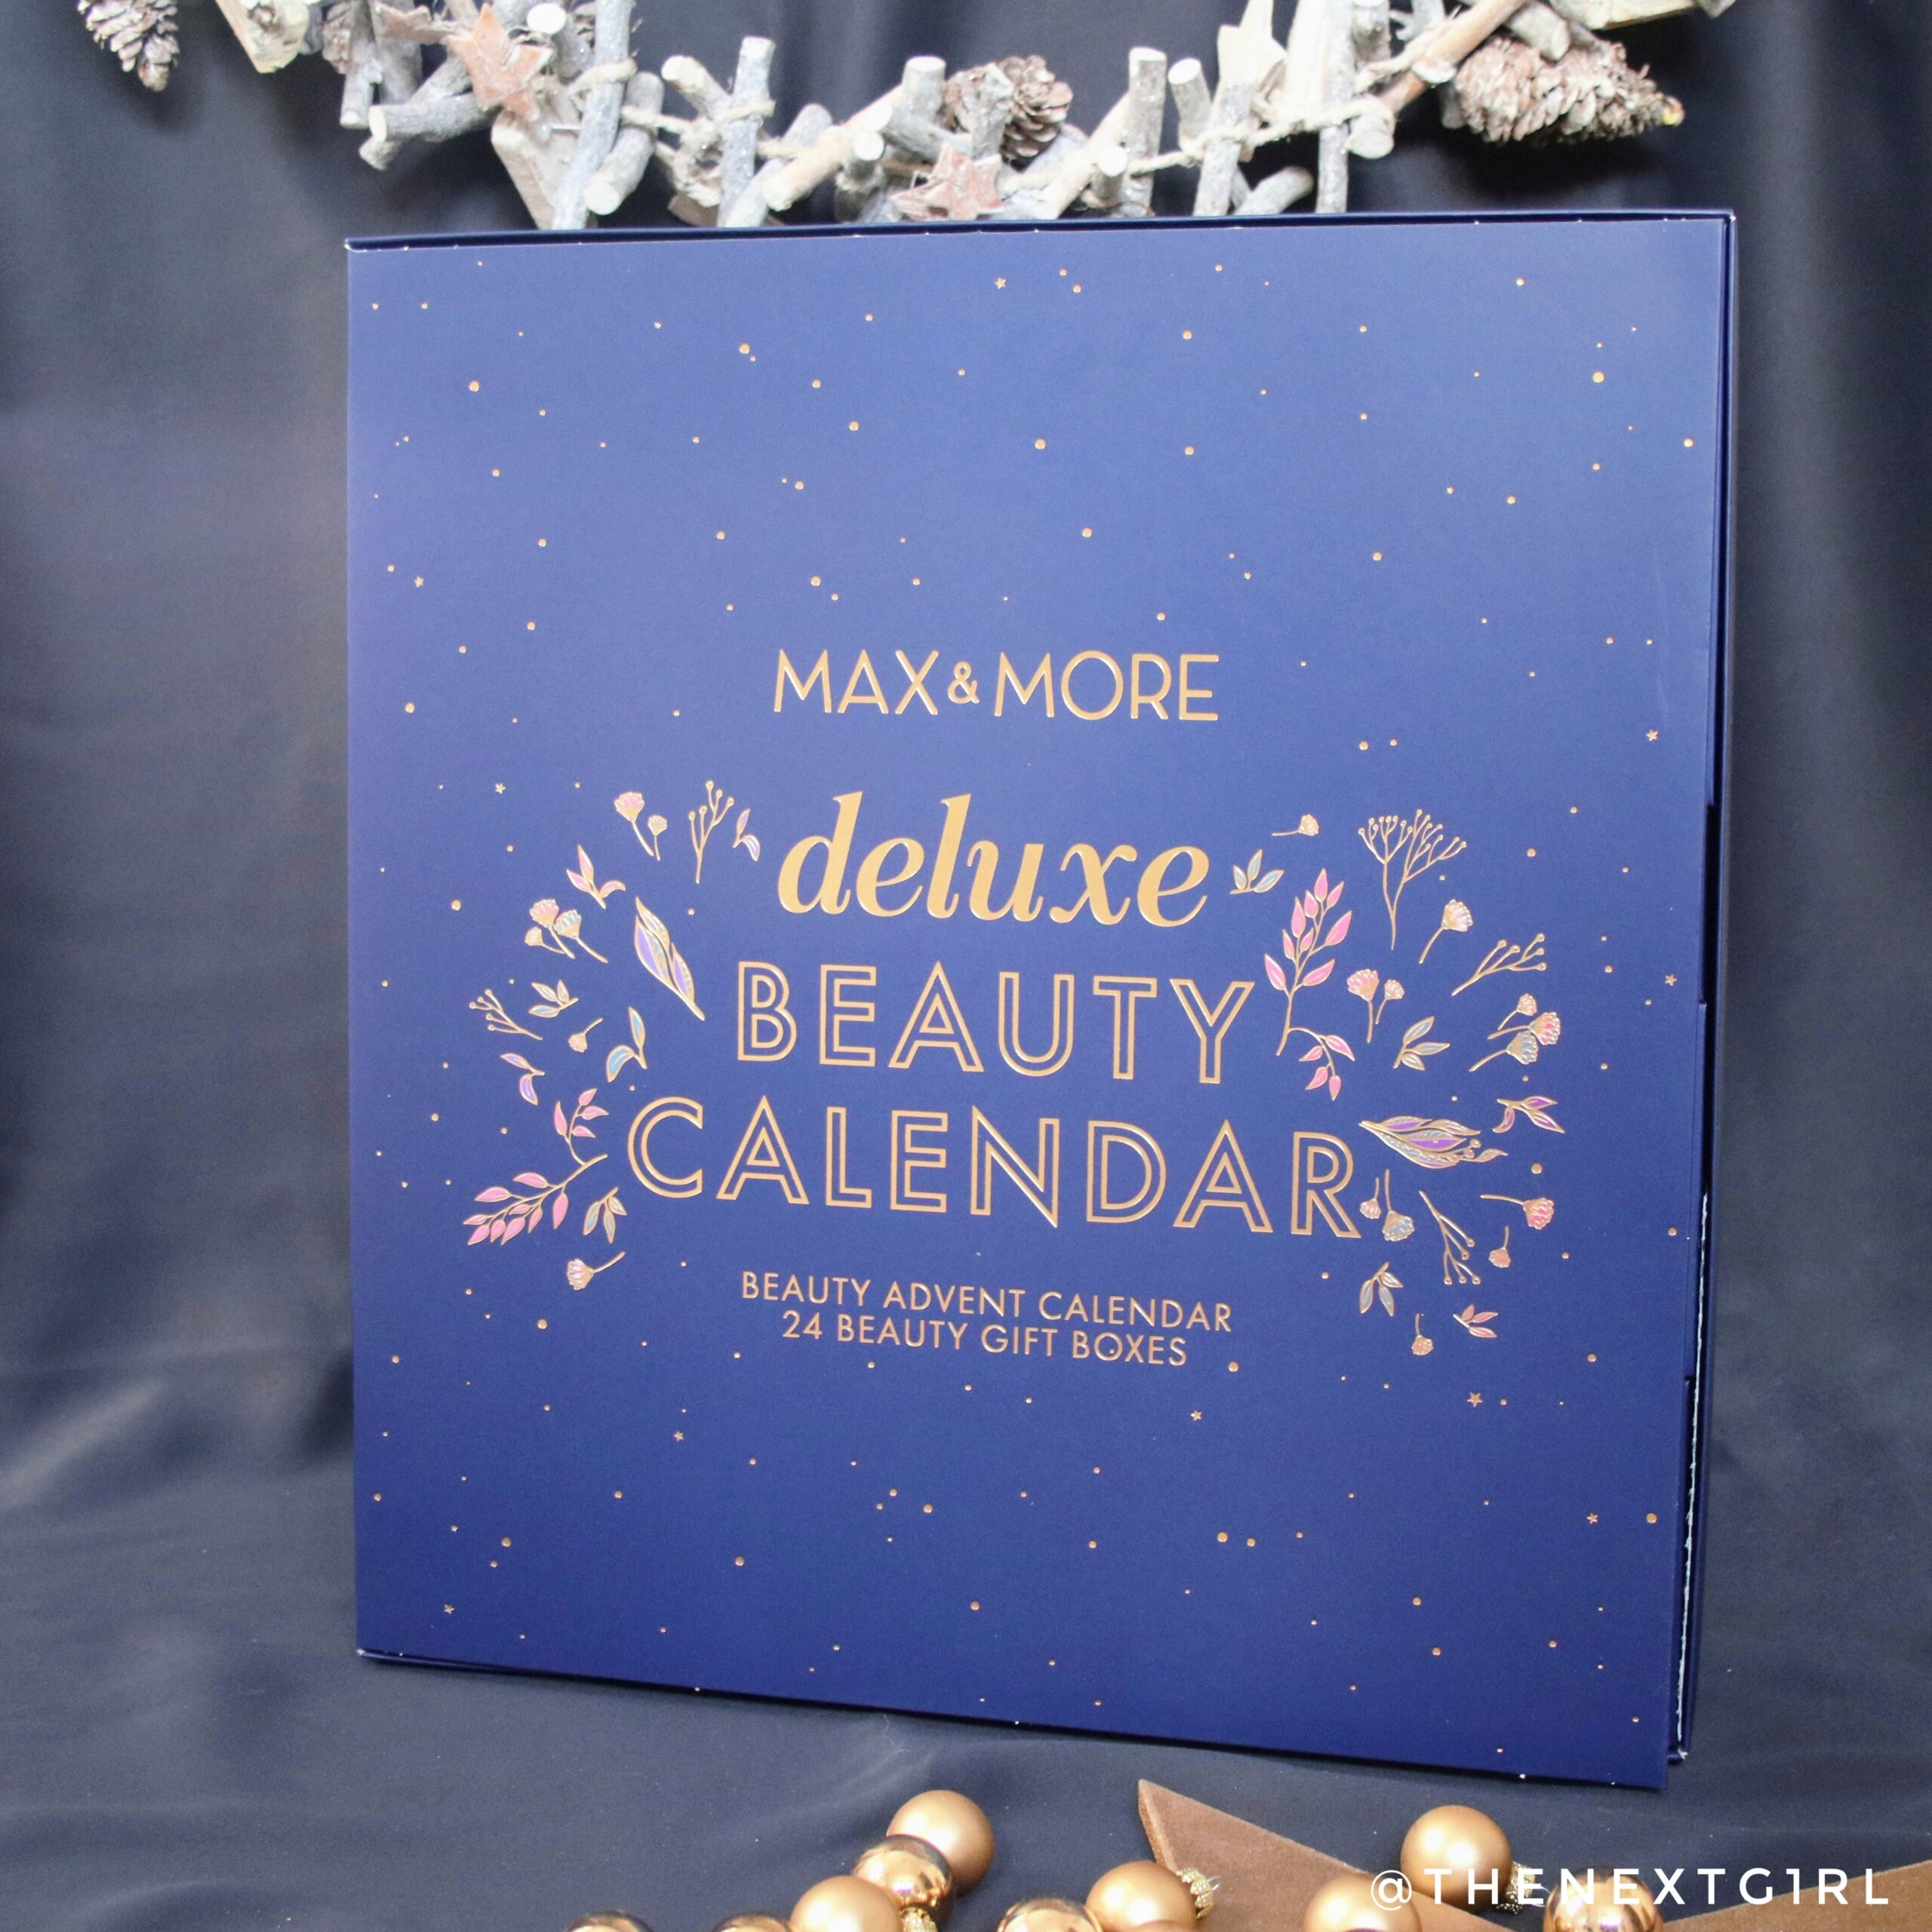 Max & More adventskalender 2020 kerstmis